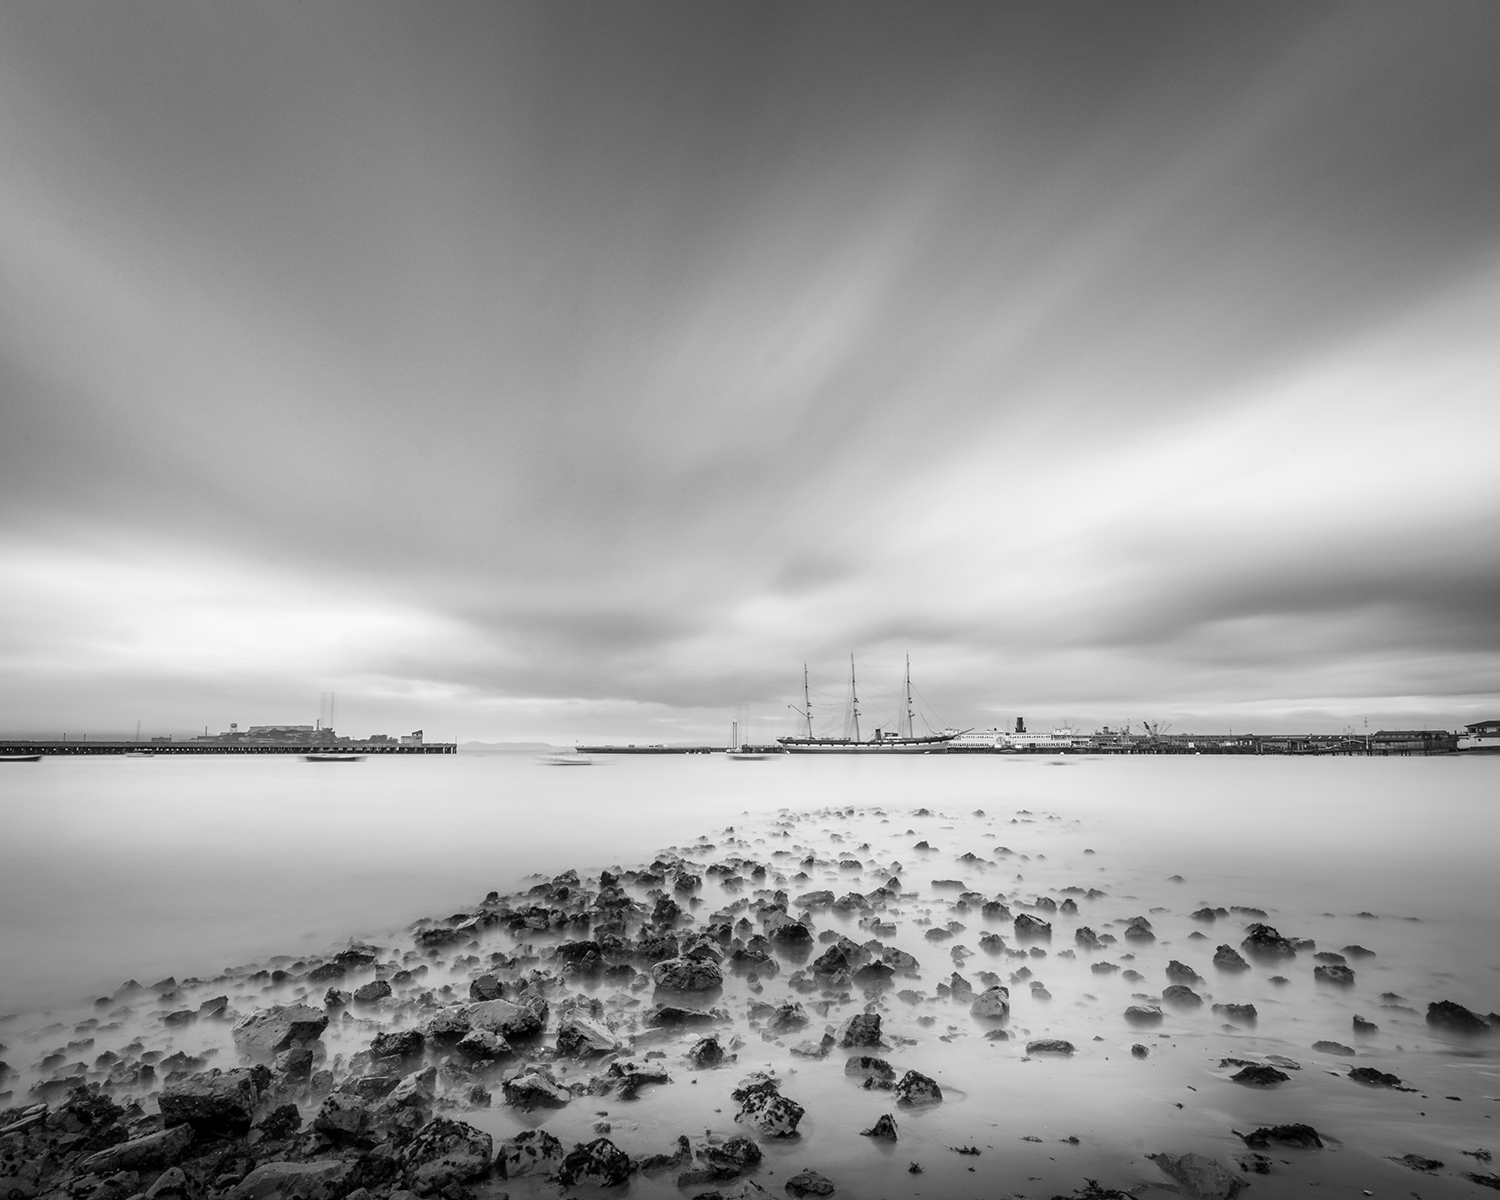 Liminality_Aquatic Bay2